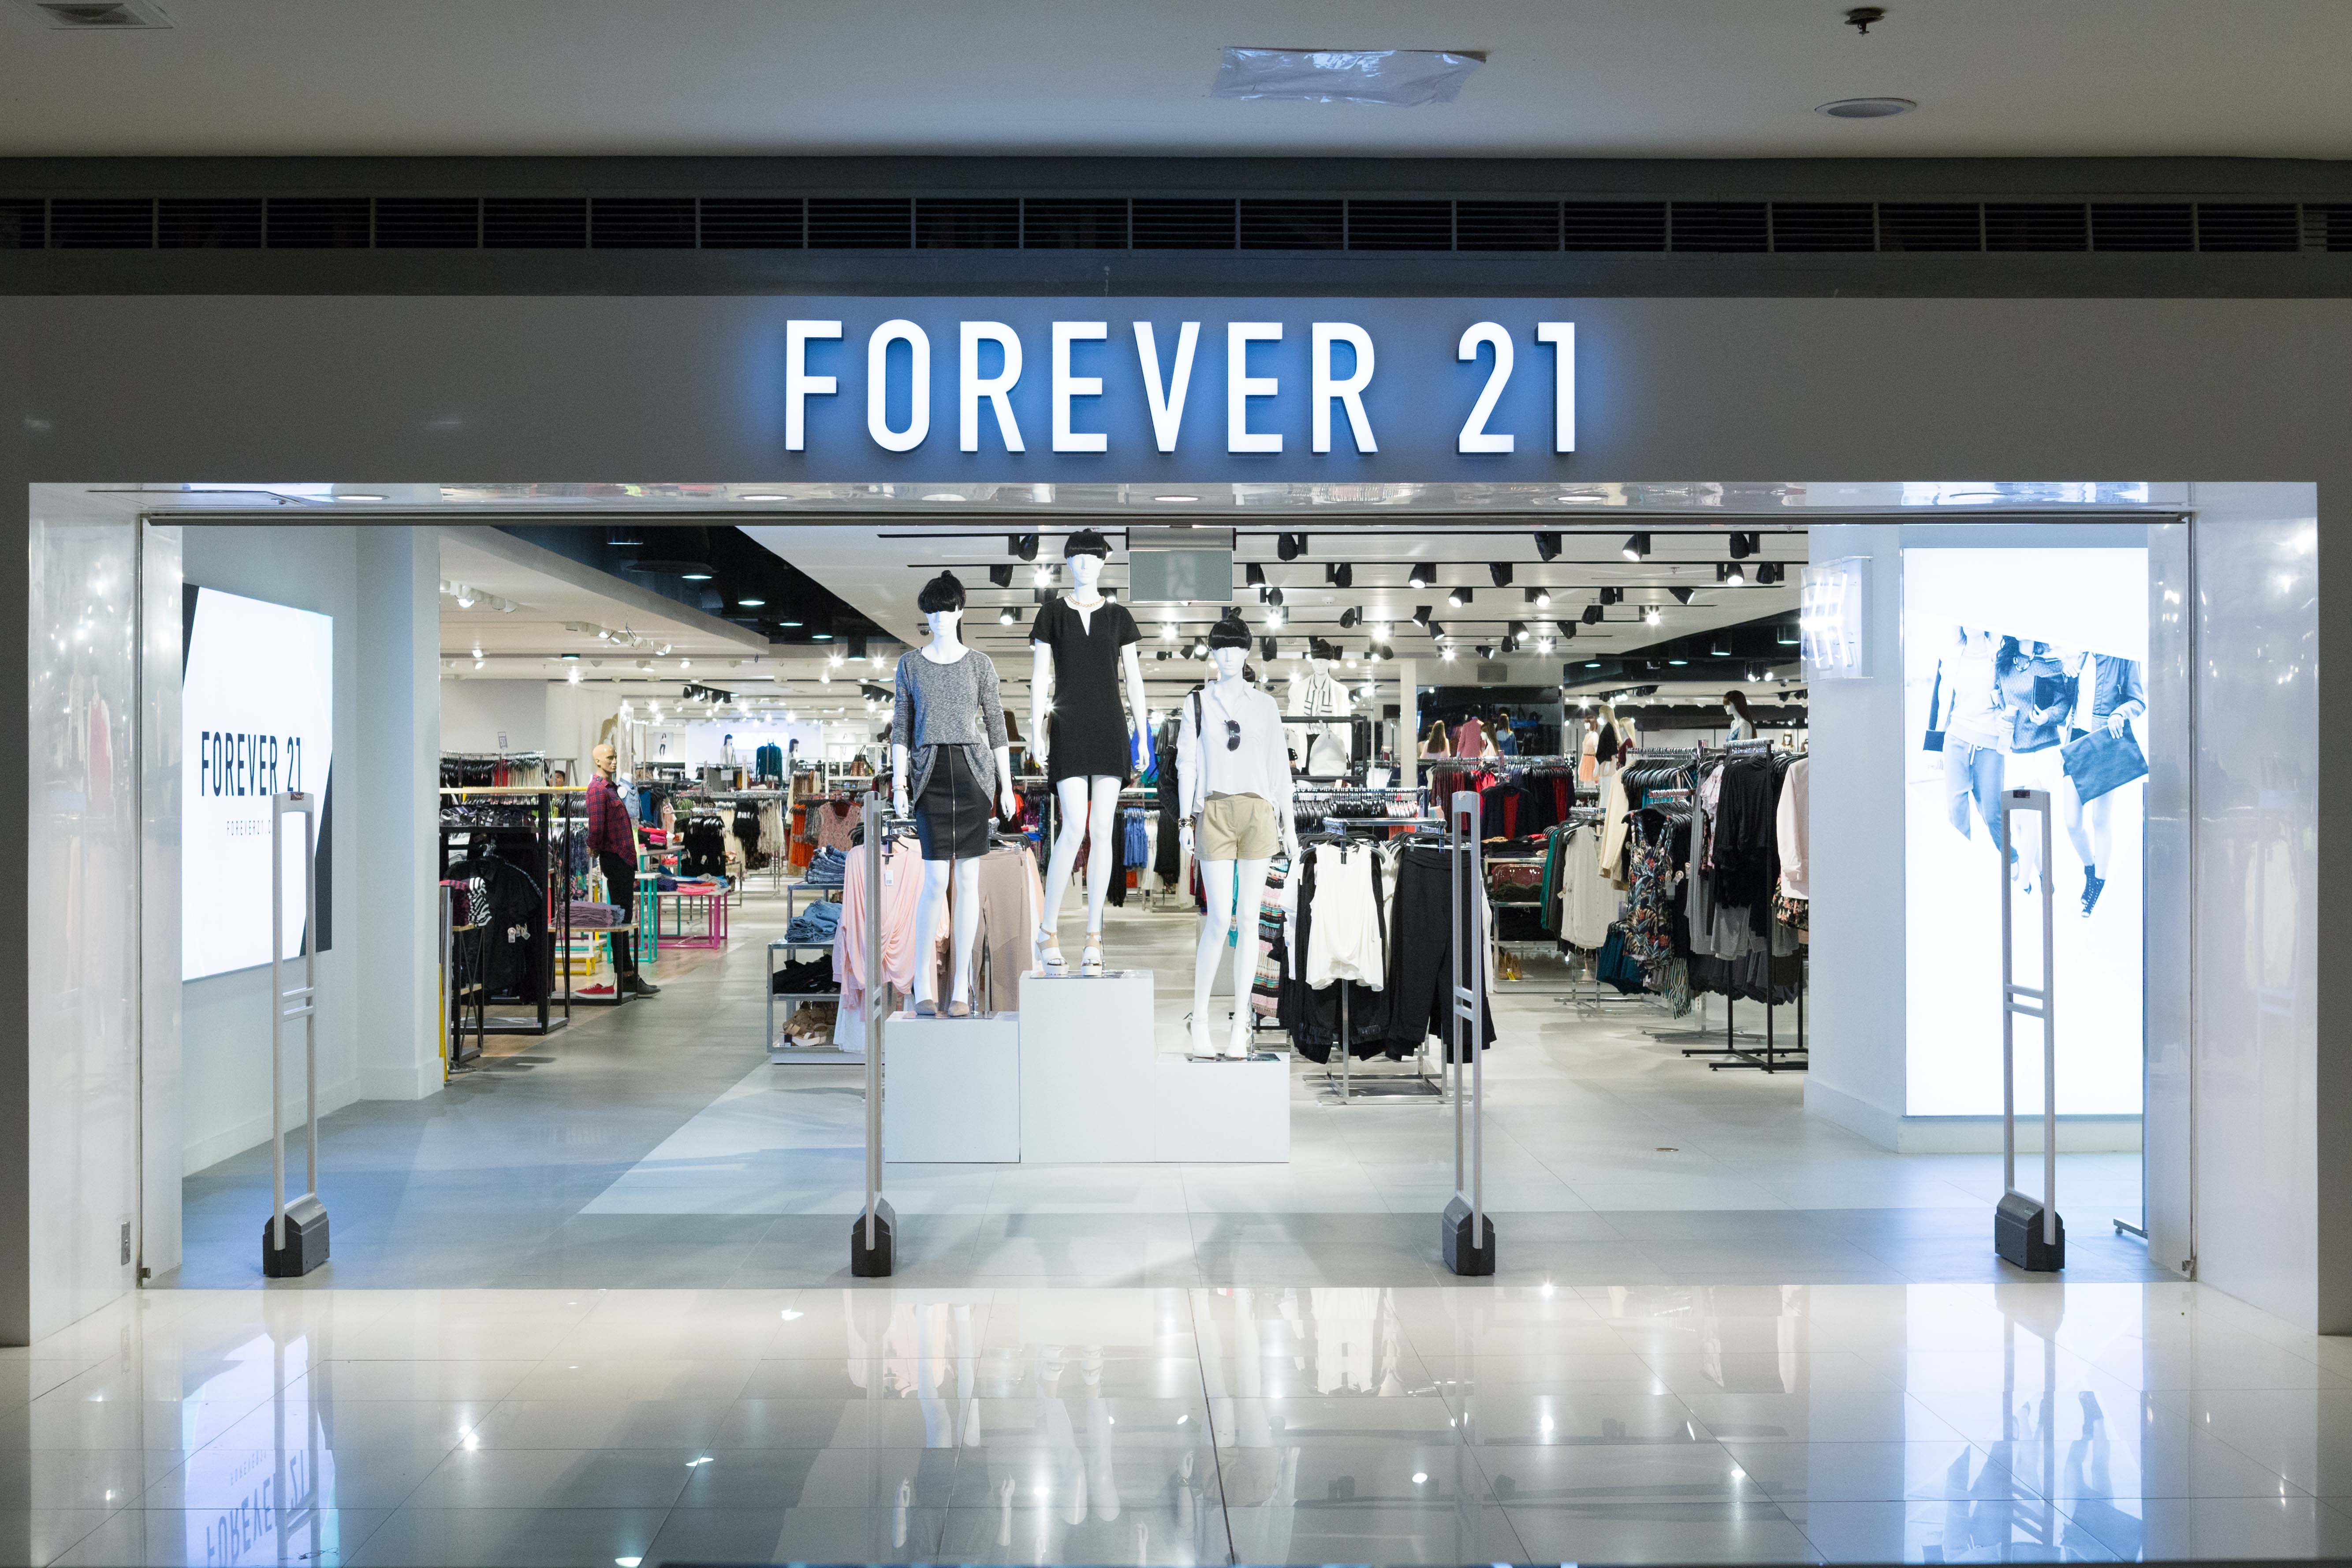 Forever 21 began as the store called Fashion 21 with square feet (84 m 2) in Highland Park, Los Angeles, in , and has grown into the clothing lines Forever 21, XXI Forever, Love 21 and Heritage with over stores in the Americas, Asia, the Middle East and the UK.